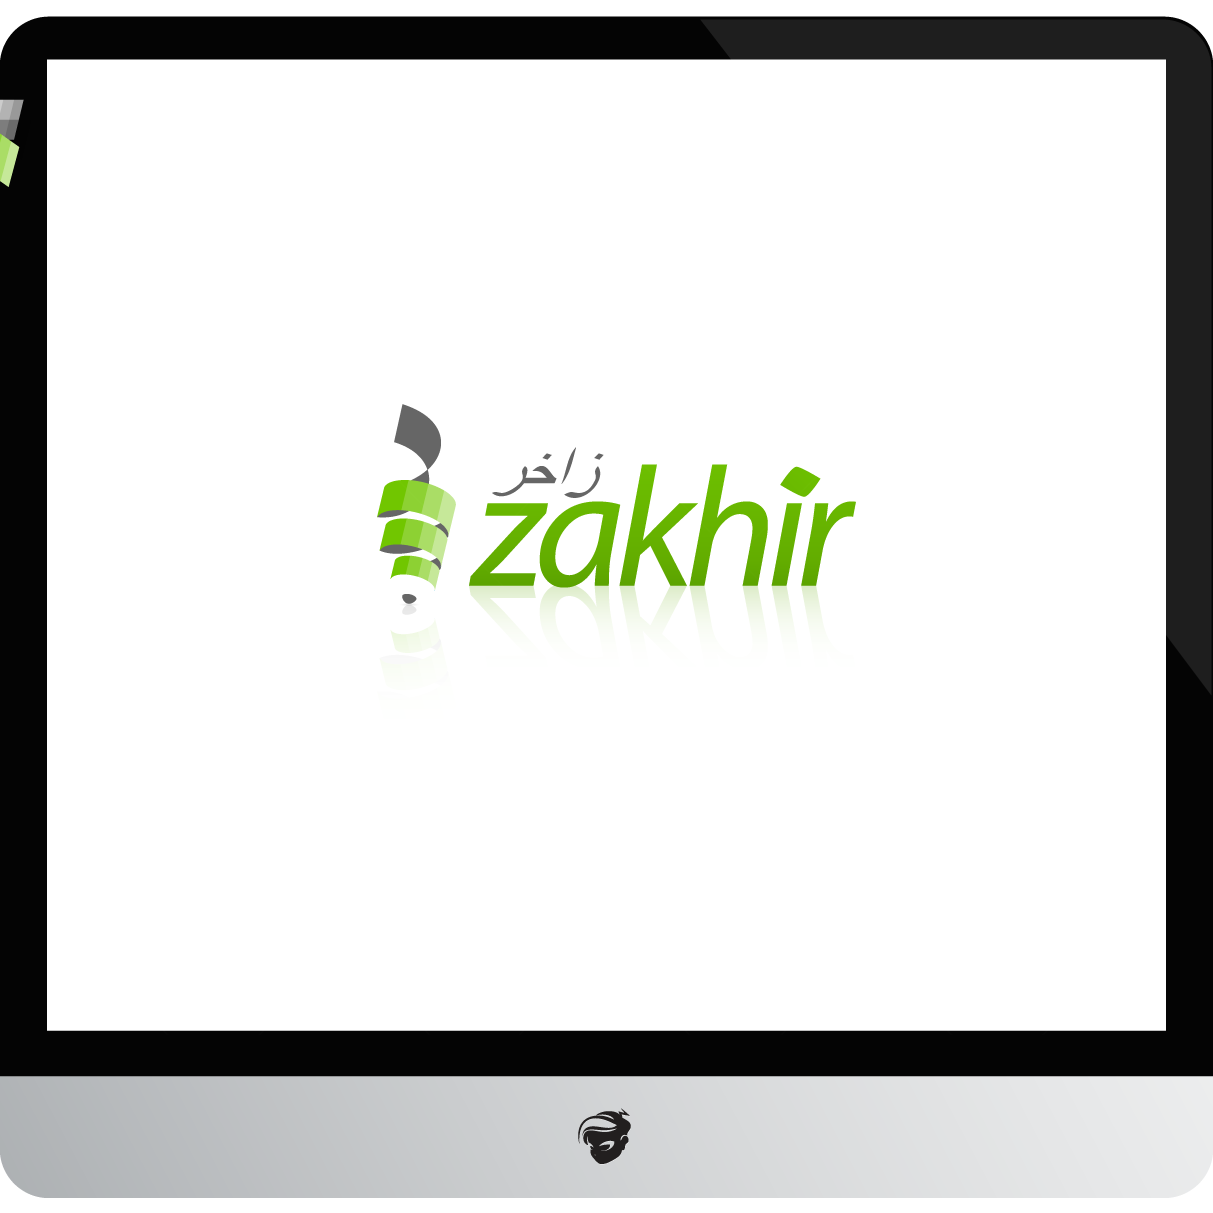 Logo Design by zesthar - Entry No. 101 in the Logo Design Contest Zakhir Logo Design.